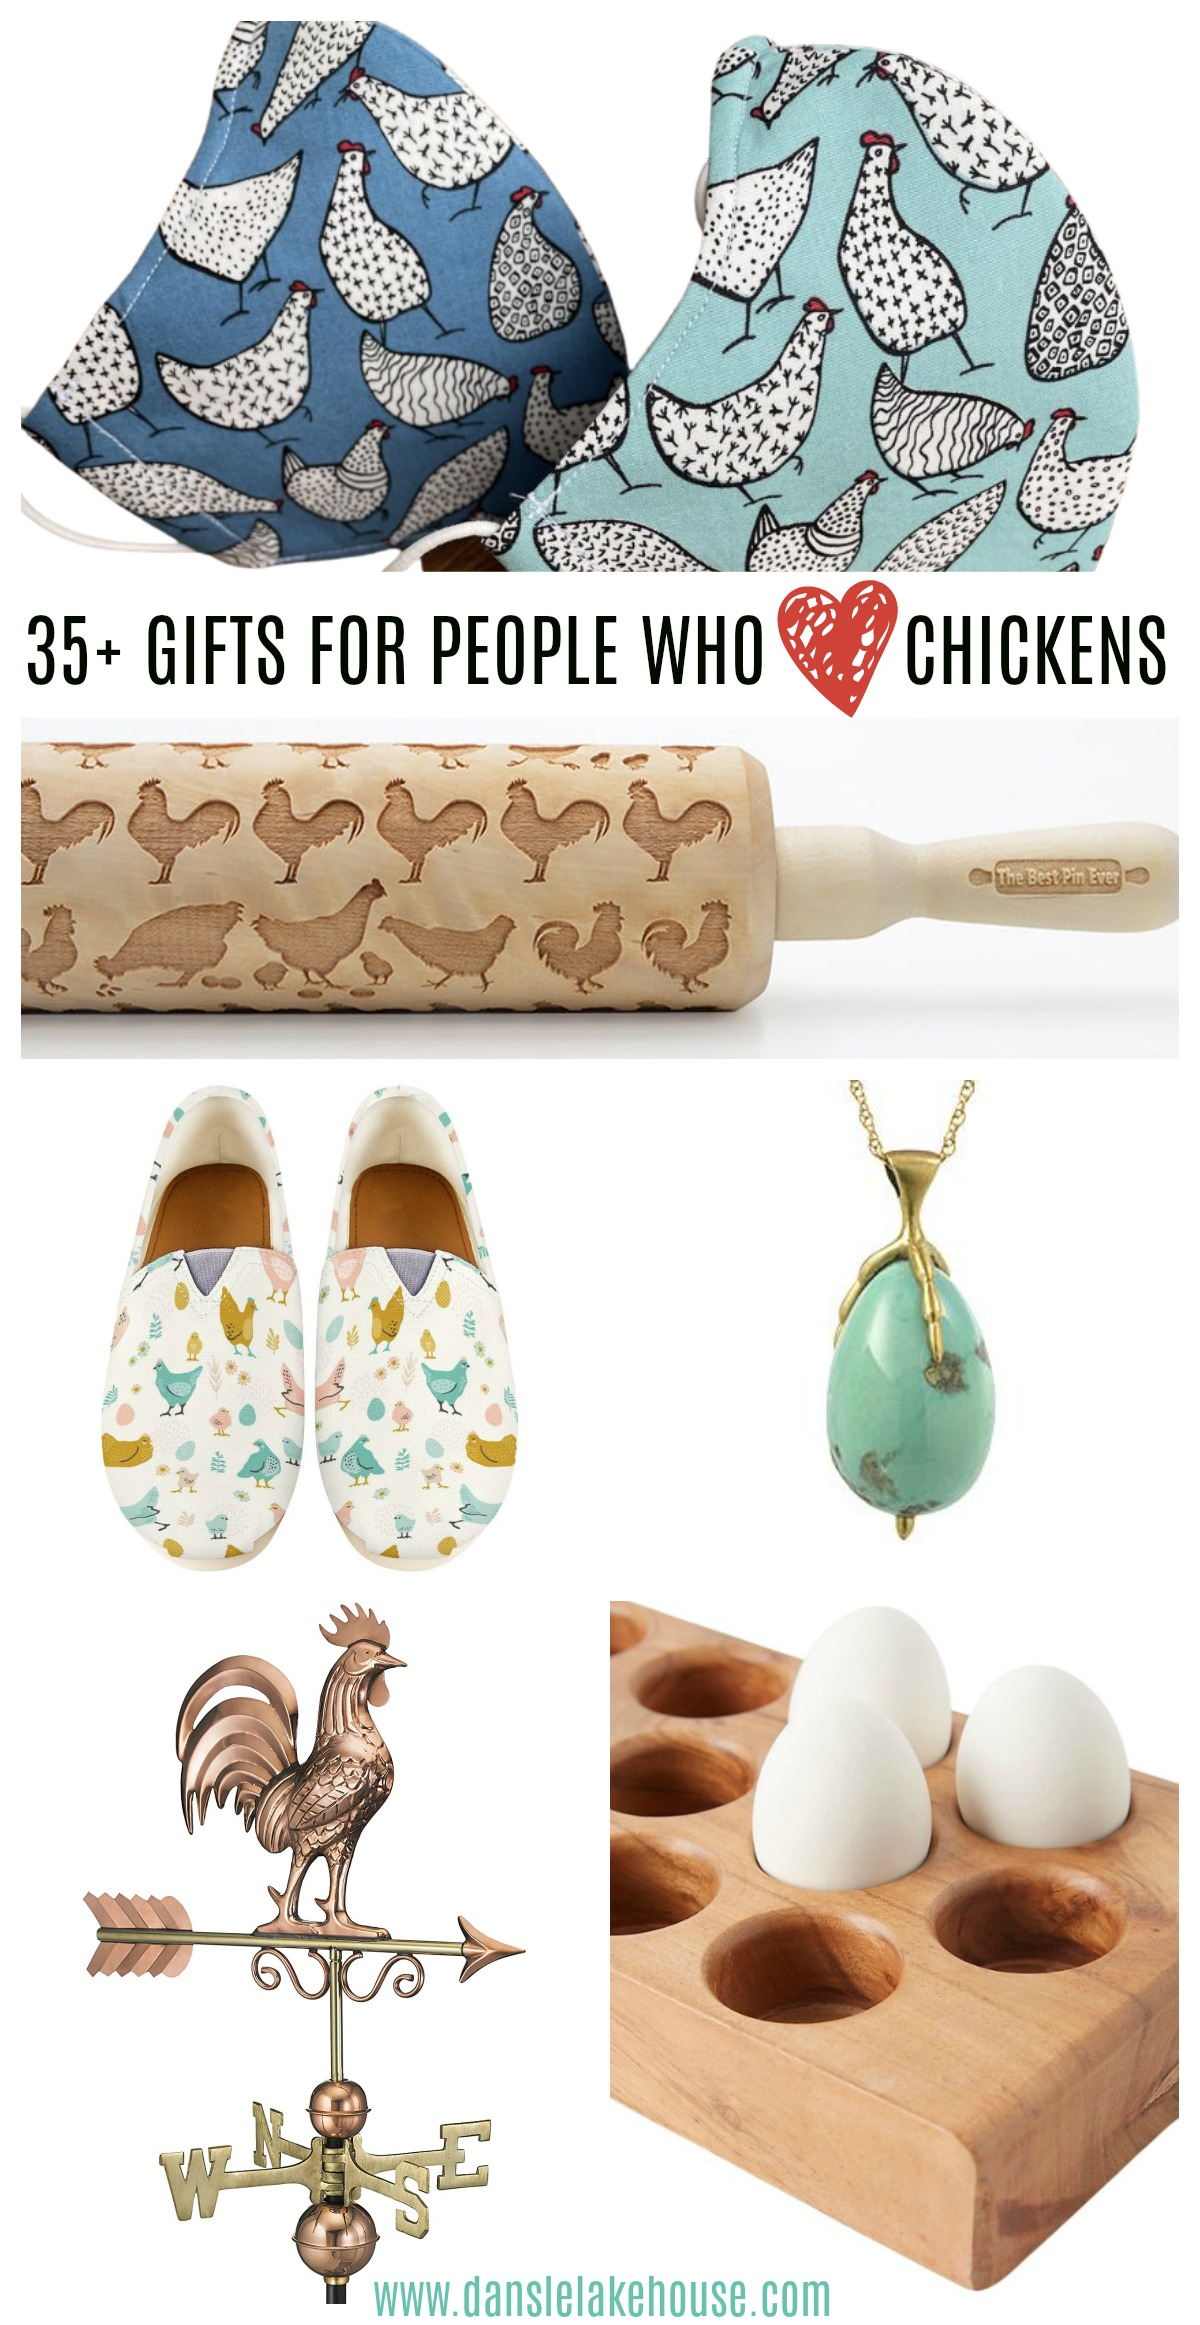 35+ gifts for people who love chickens